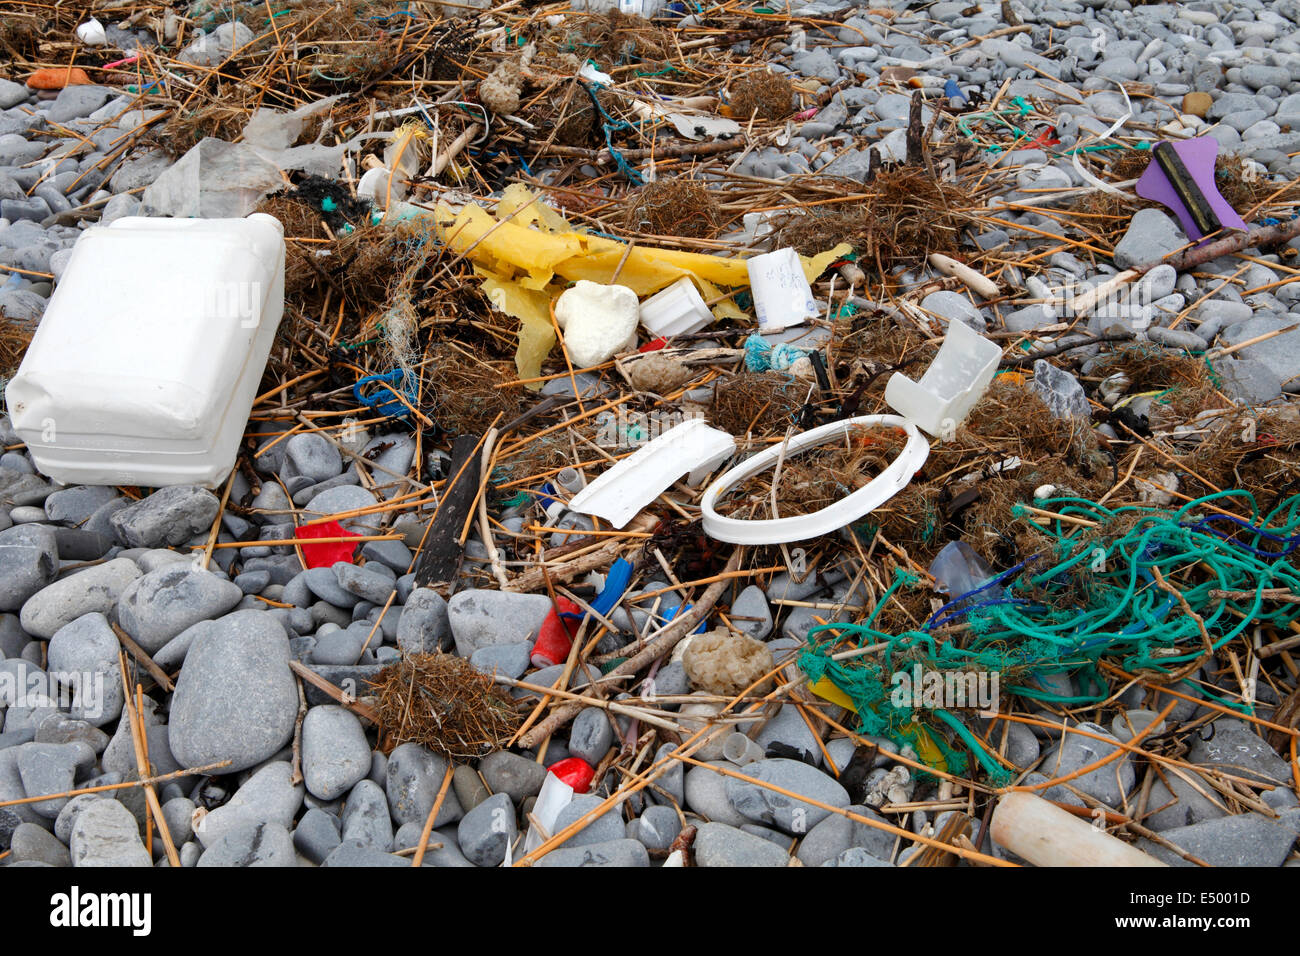 flotsam on the beach, a mixture of plastic and old rope and debris washed up by the sea - Stock Image